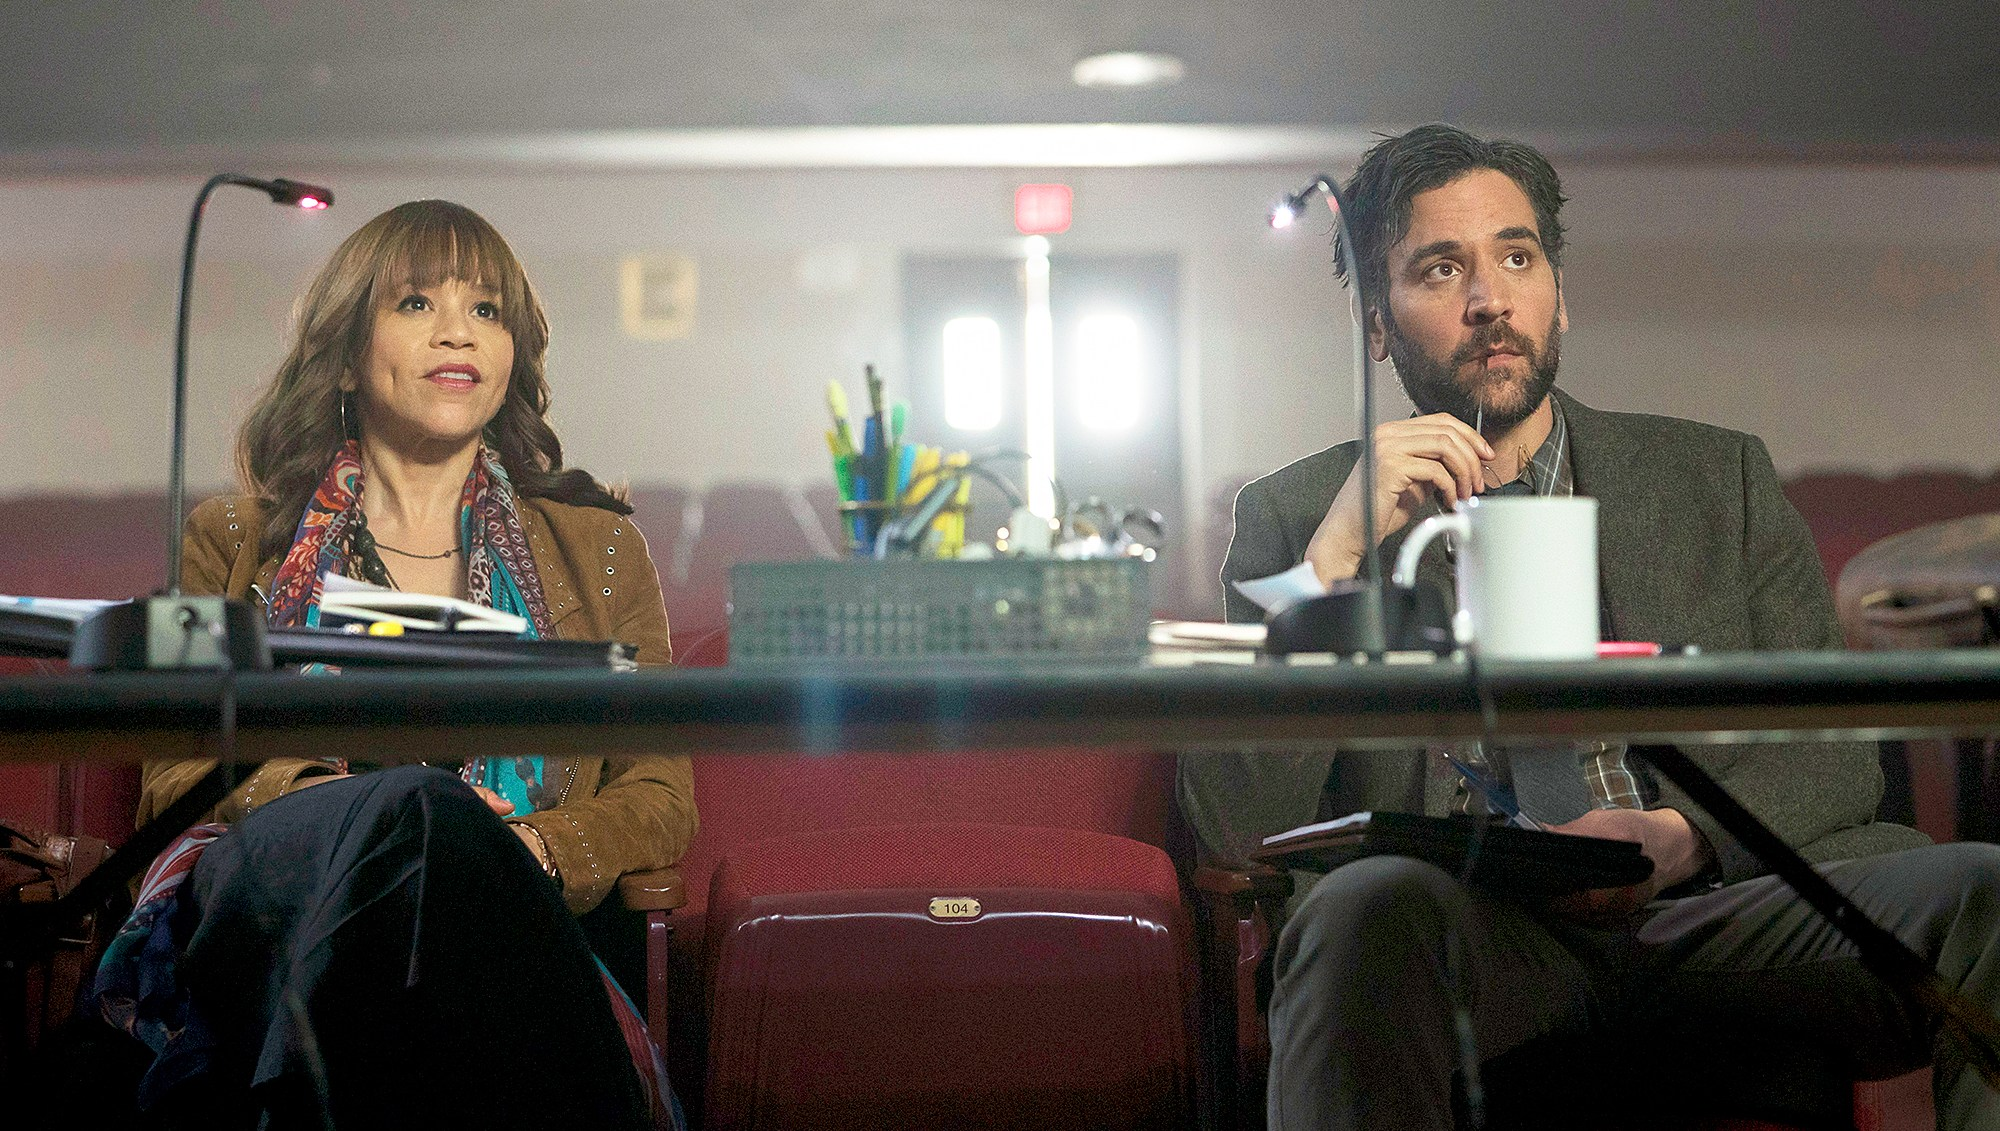 Rosie Perez as Tracey Wolfe and Josh Radnor as Lou Mazzuchelli on 'Rise'